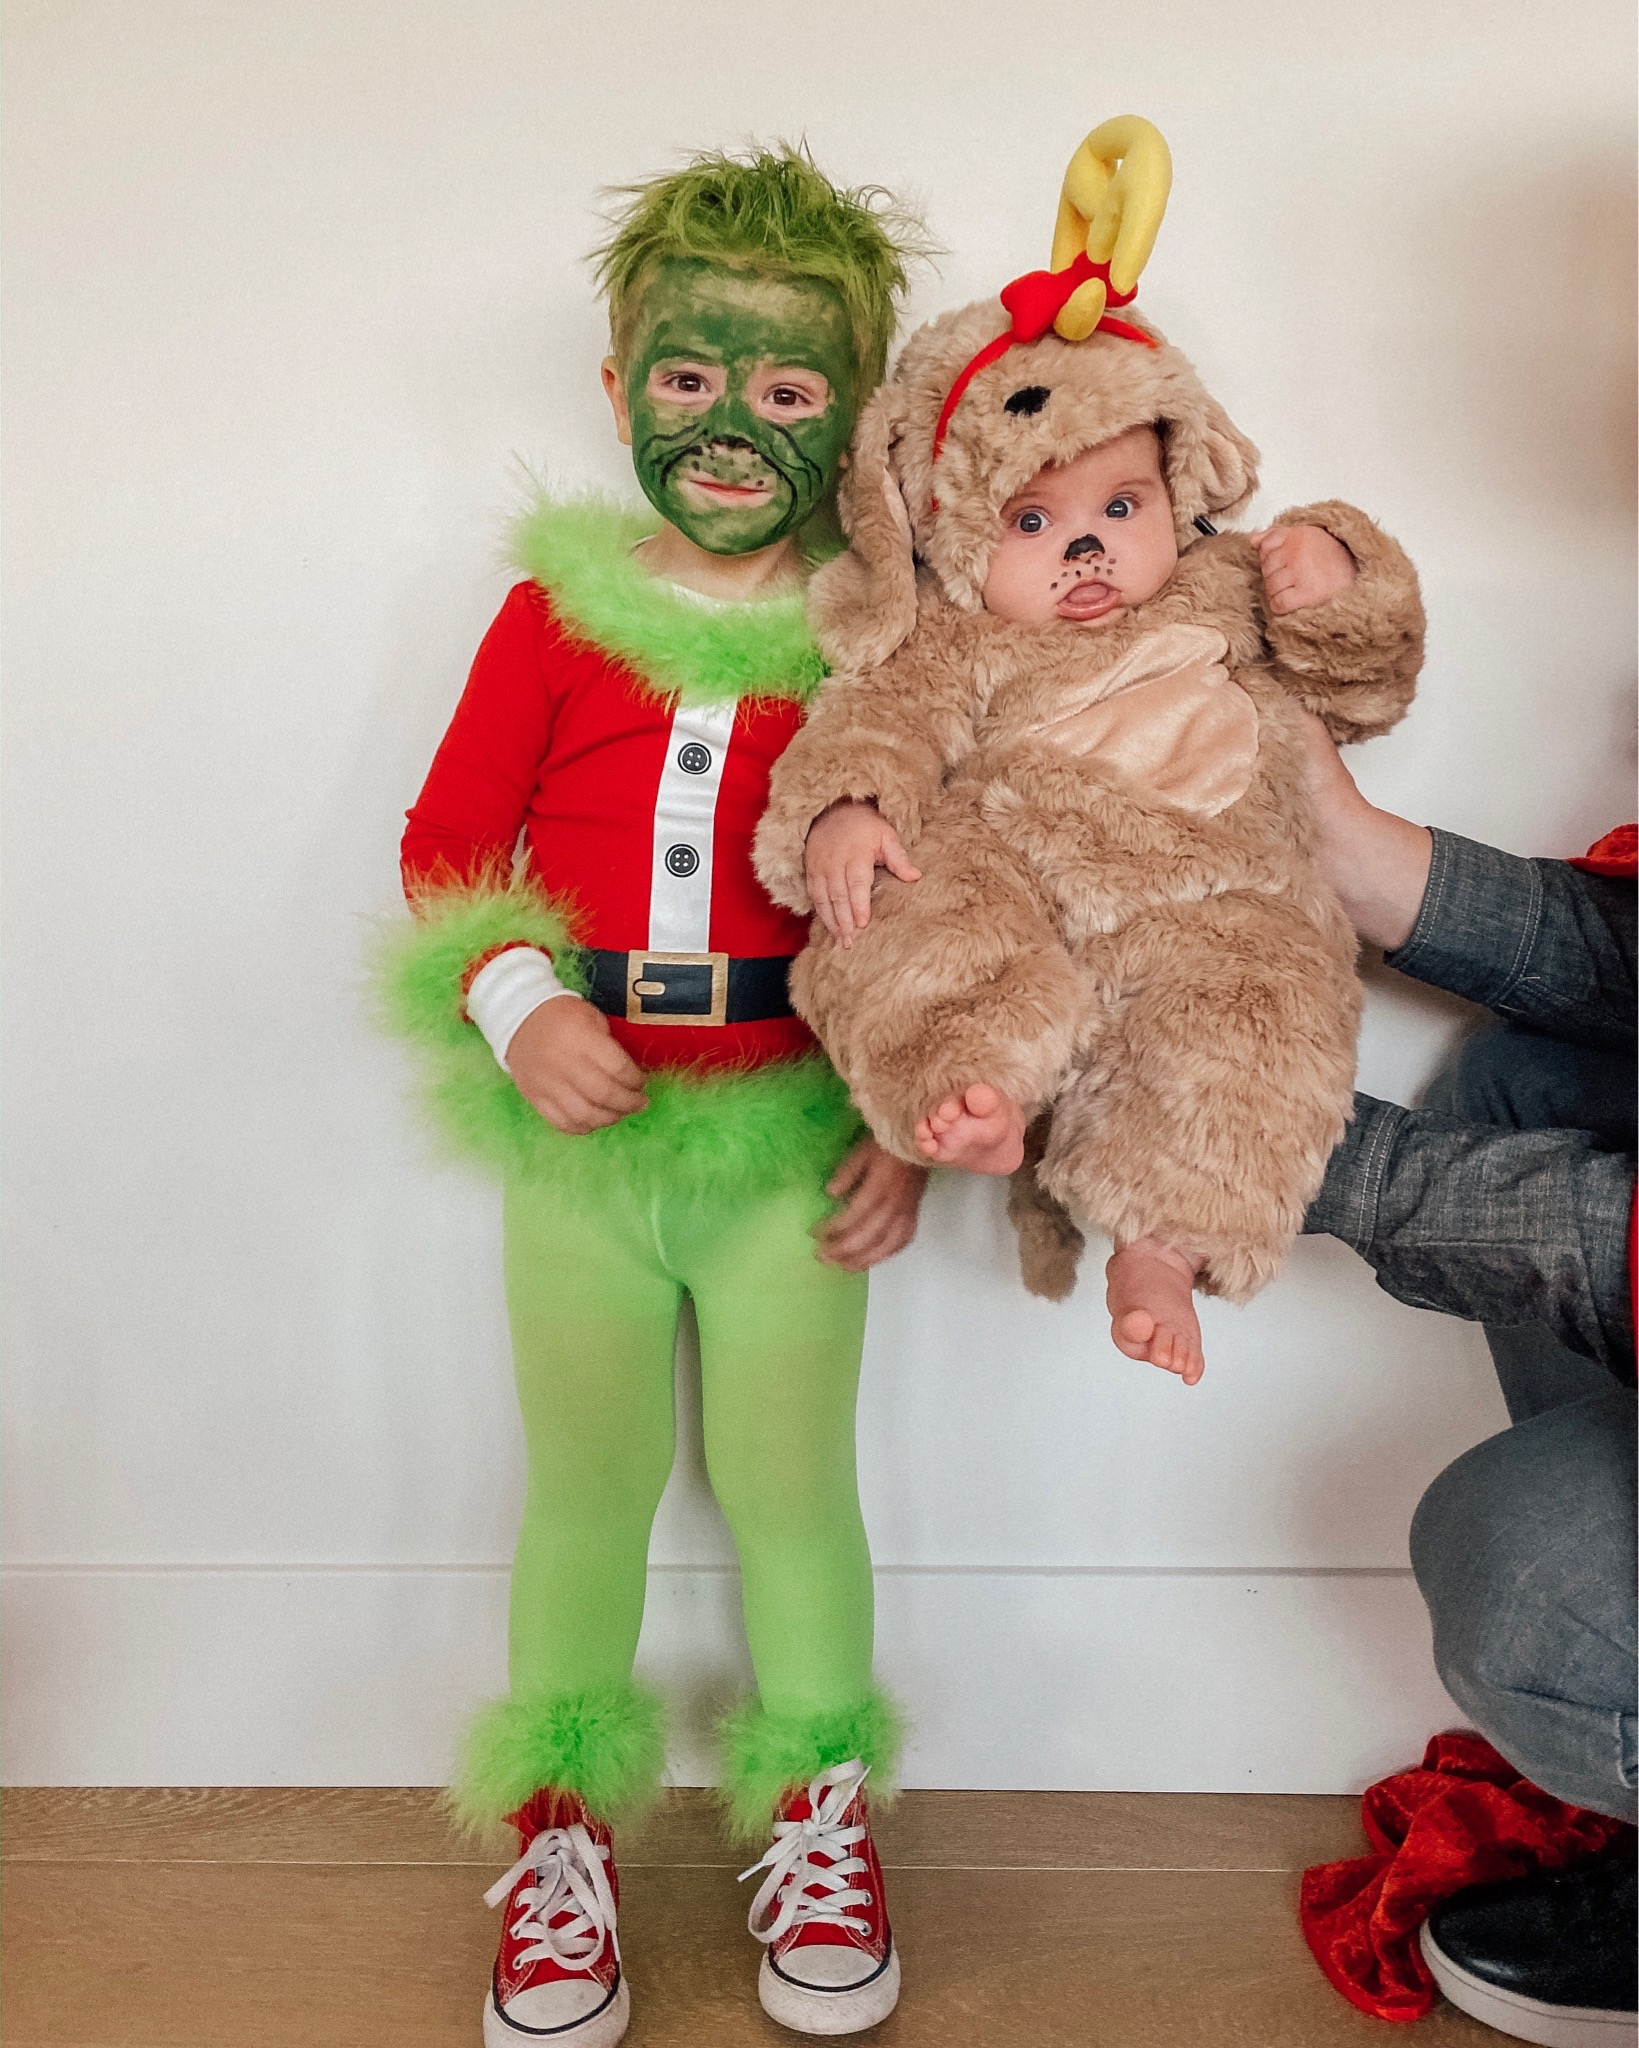 Family Halloween Costumes by popular San Diego lifestyle blog, Navy Grace: image of a family dressed up as characters from The Grinch.